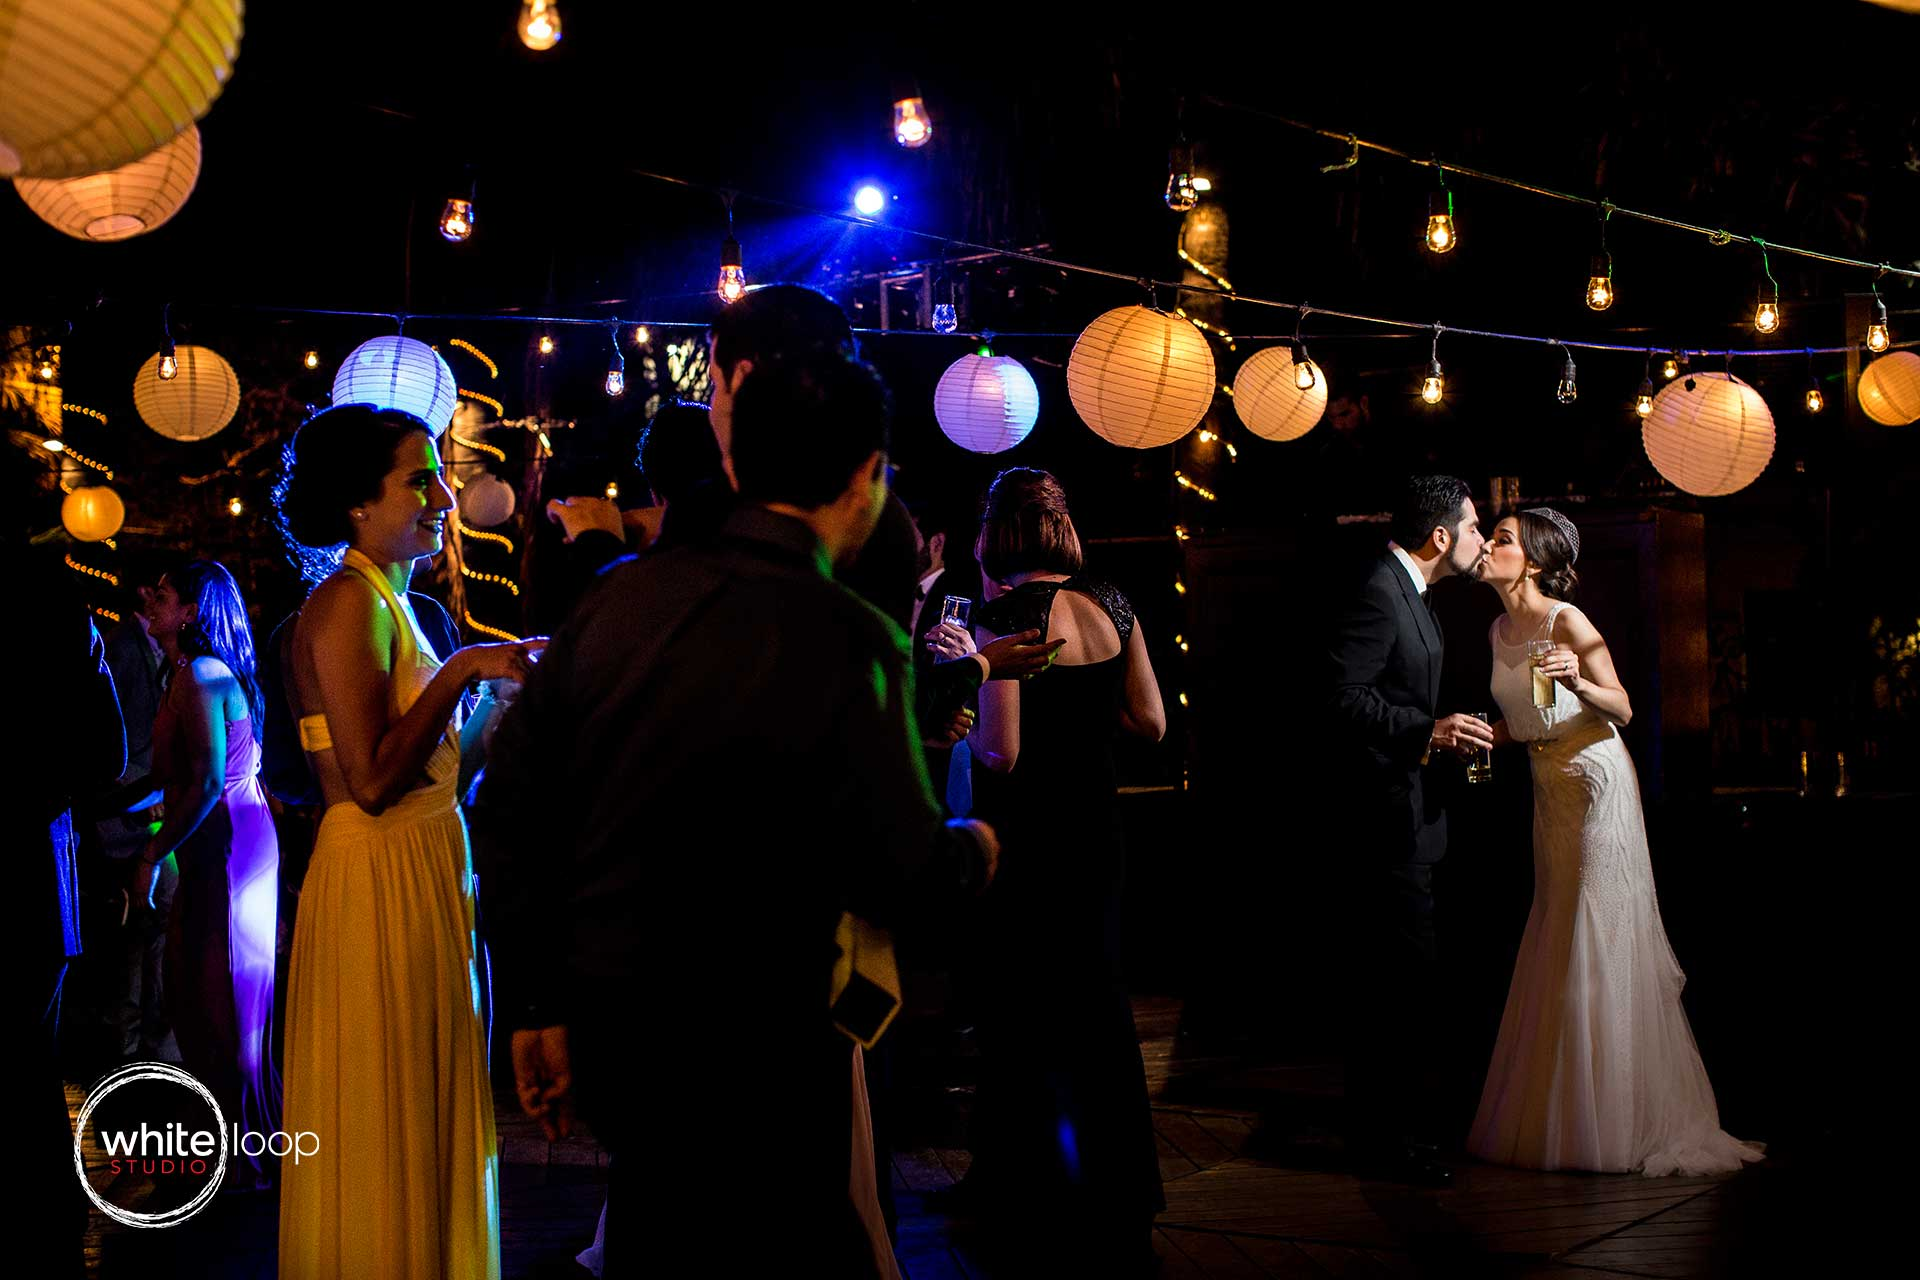 During the party and celebration with guests grooms are giving a kiss while light illuminates to capture the attention of the guests.